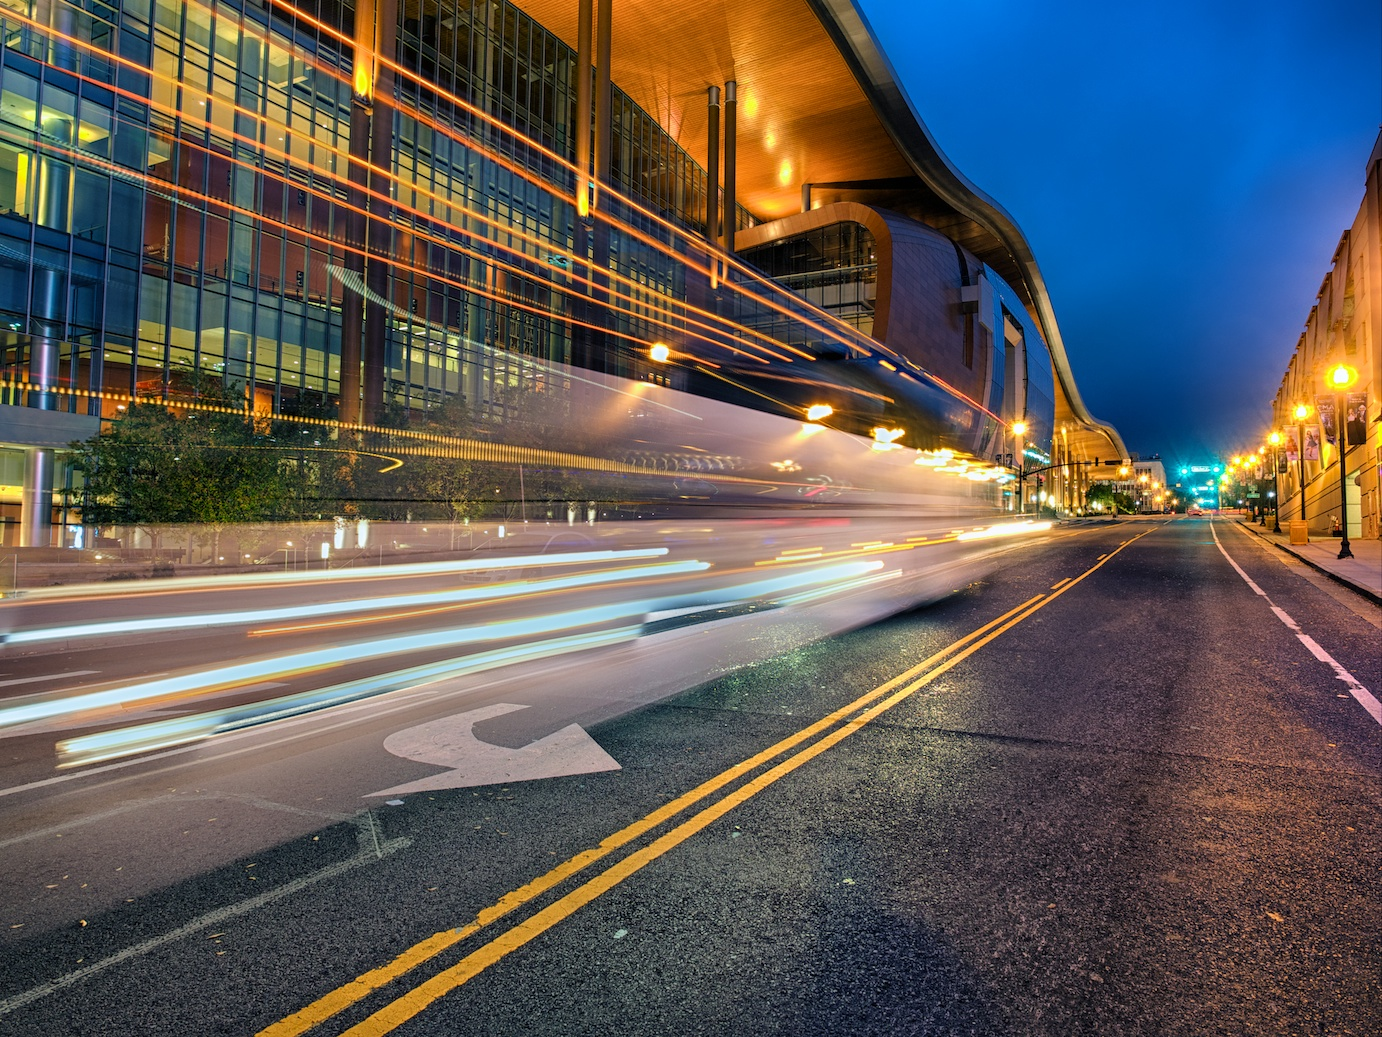 A bus passes in front of the Music City Center